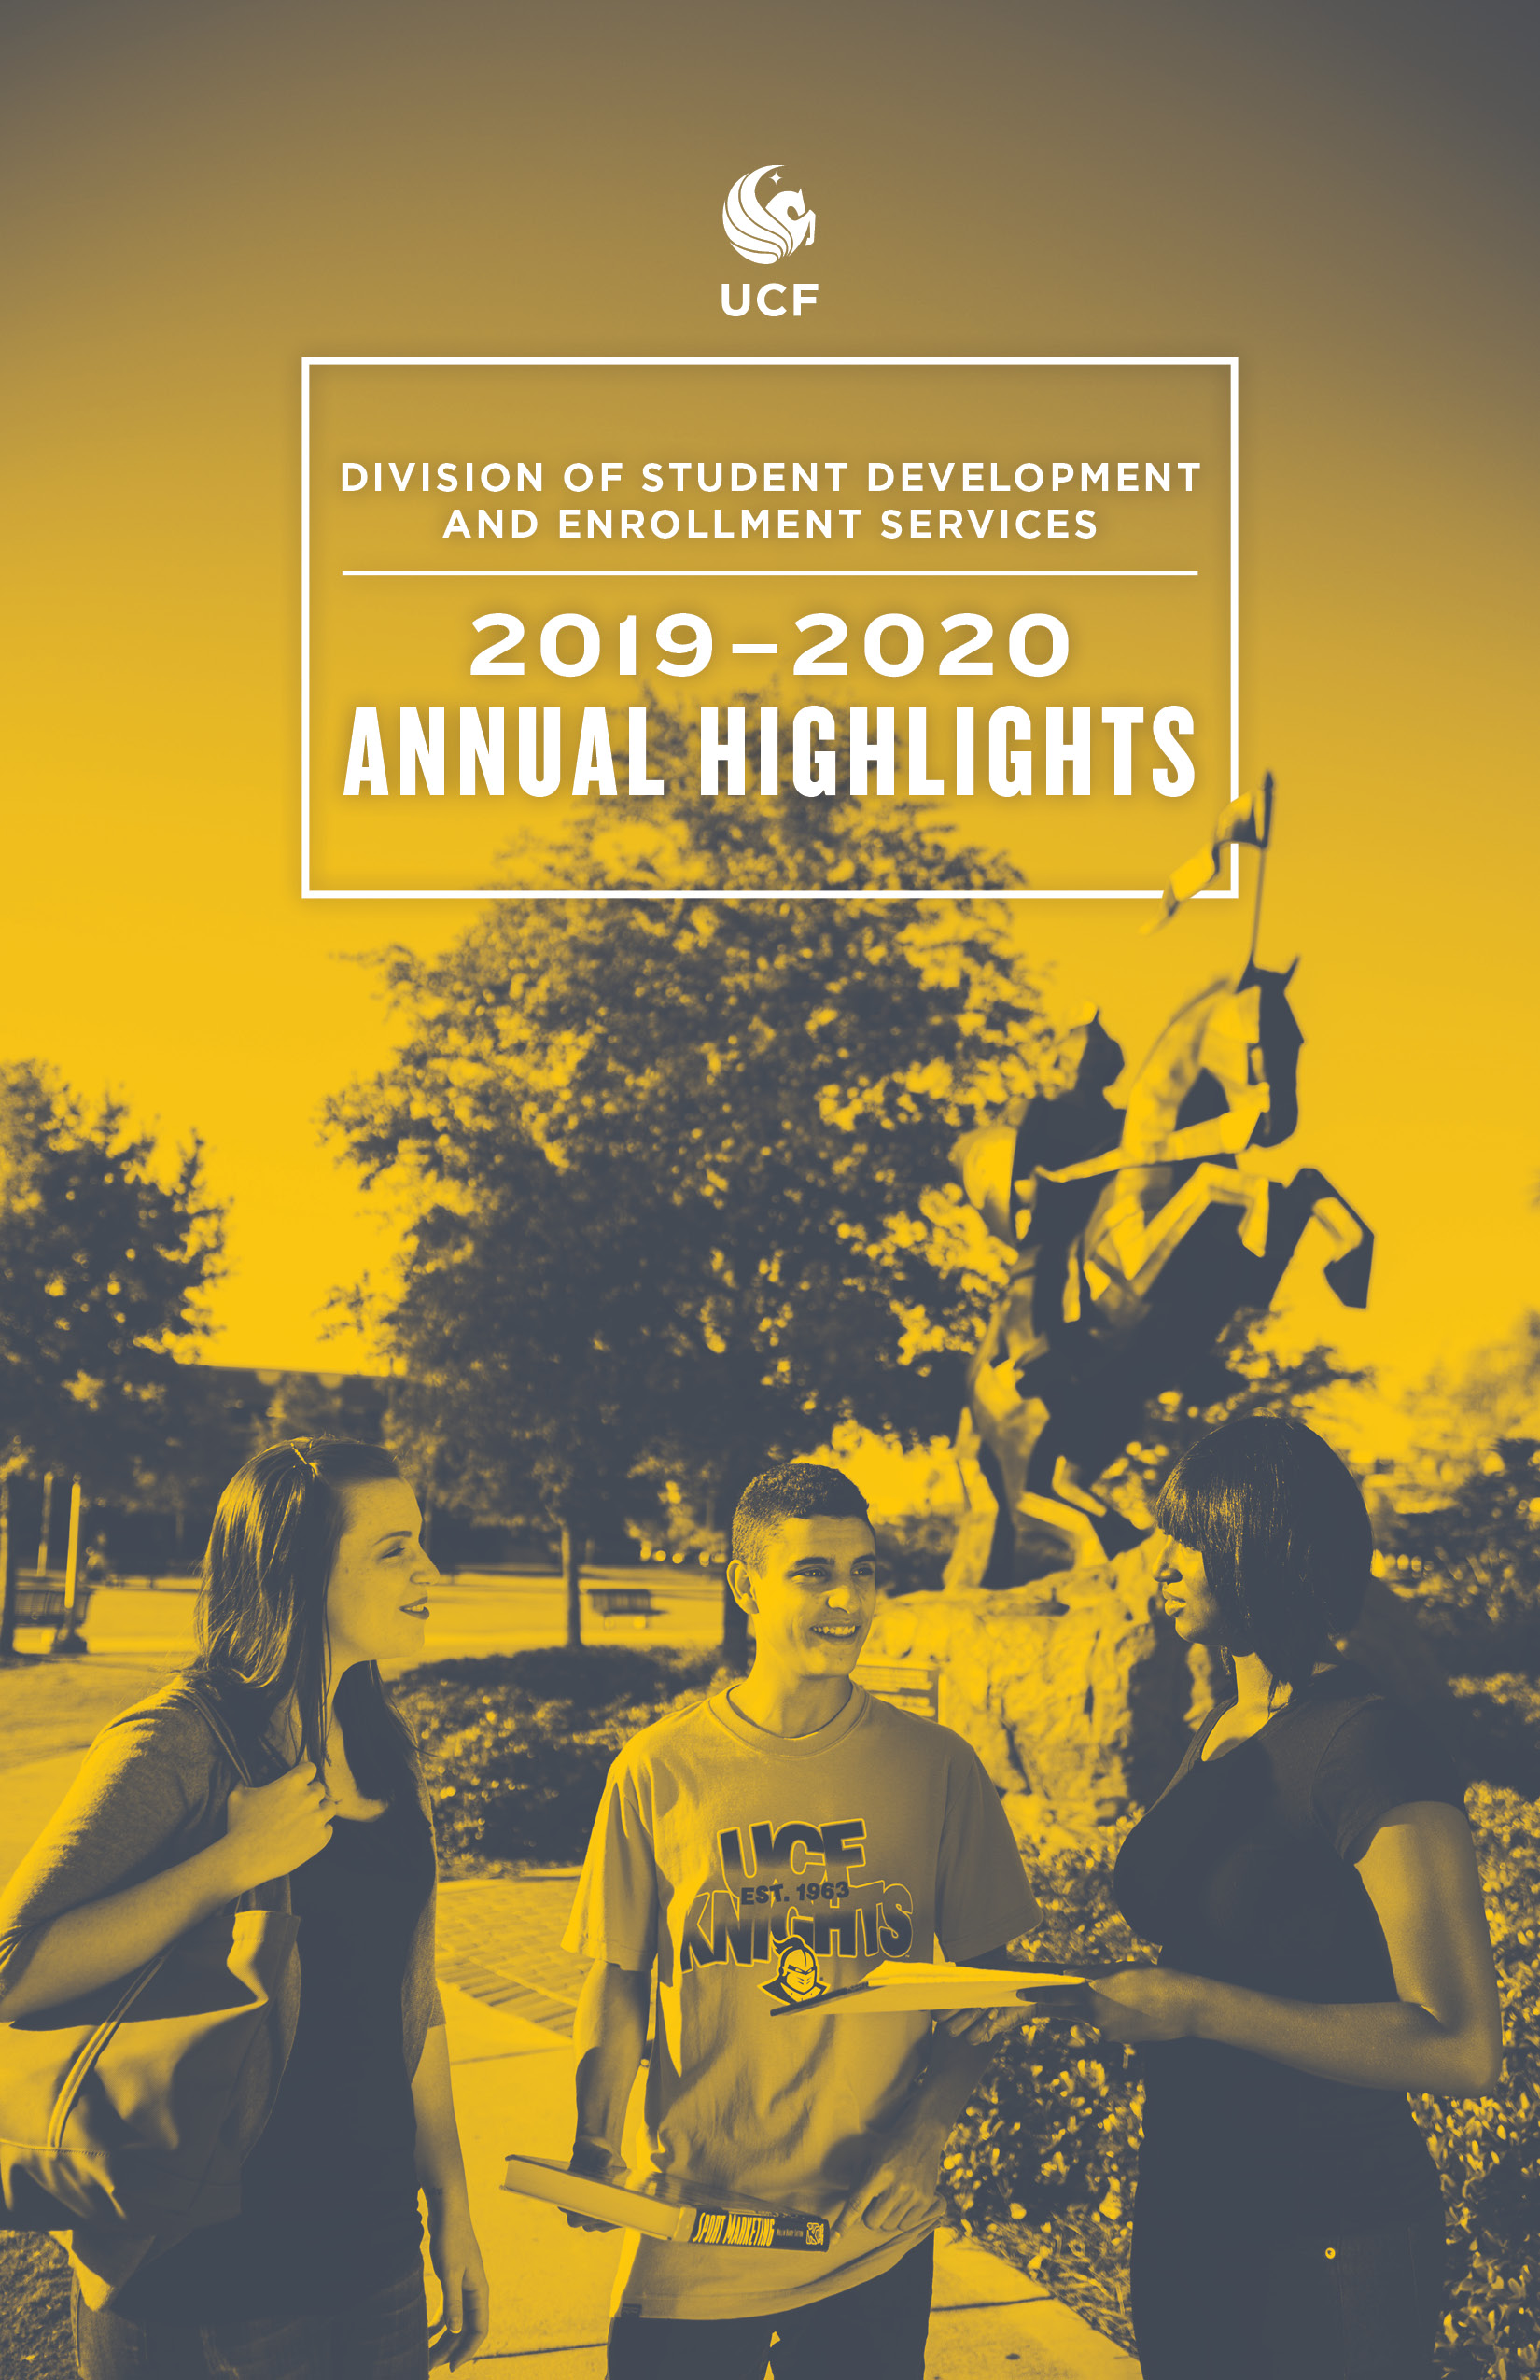 2019-2020 Annual Highlights Cover